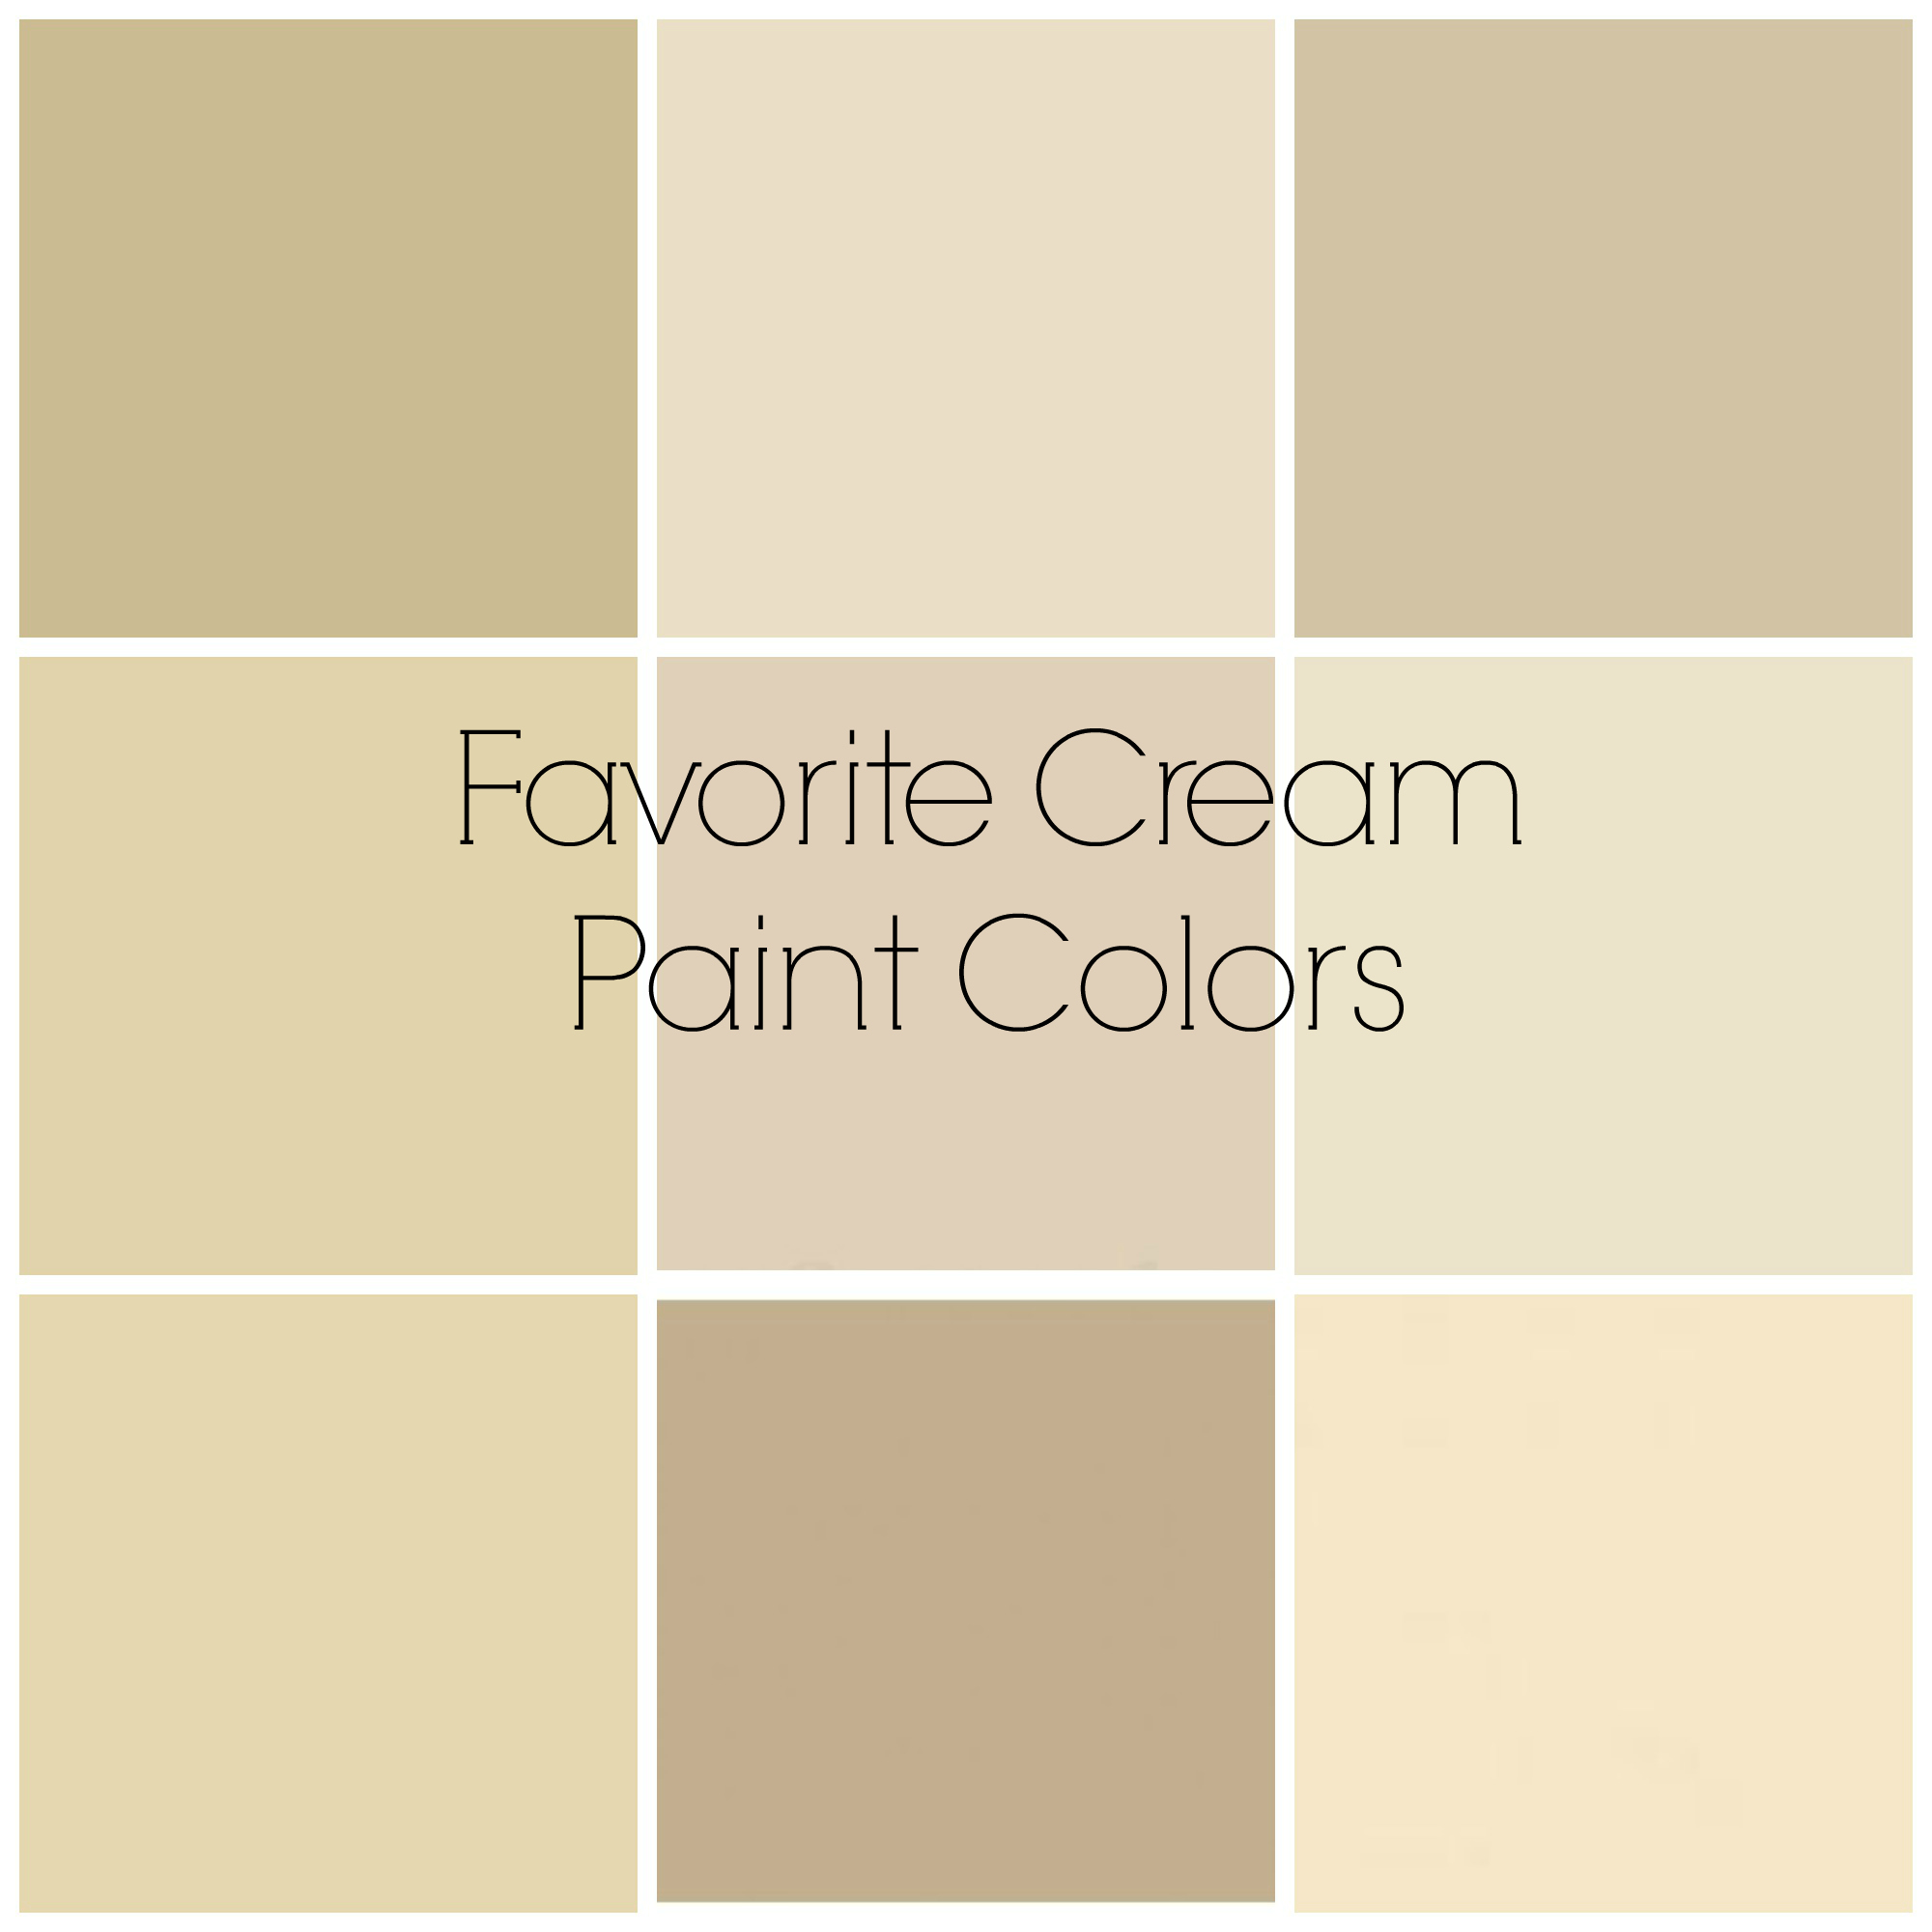 Favorite Cream Paint Colors